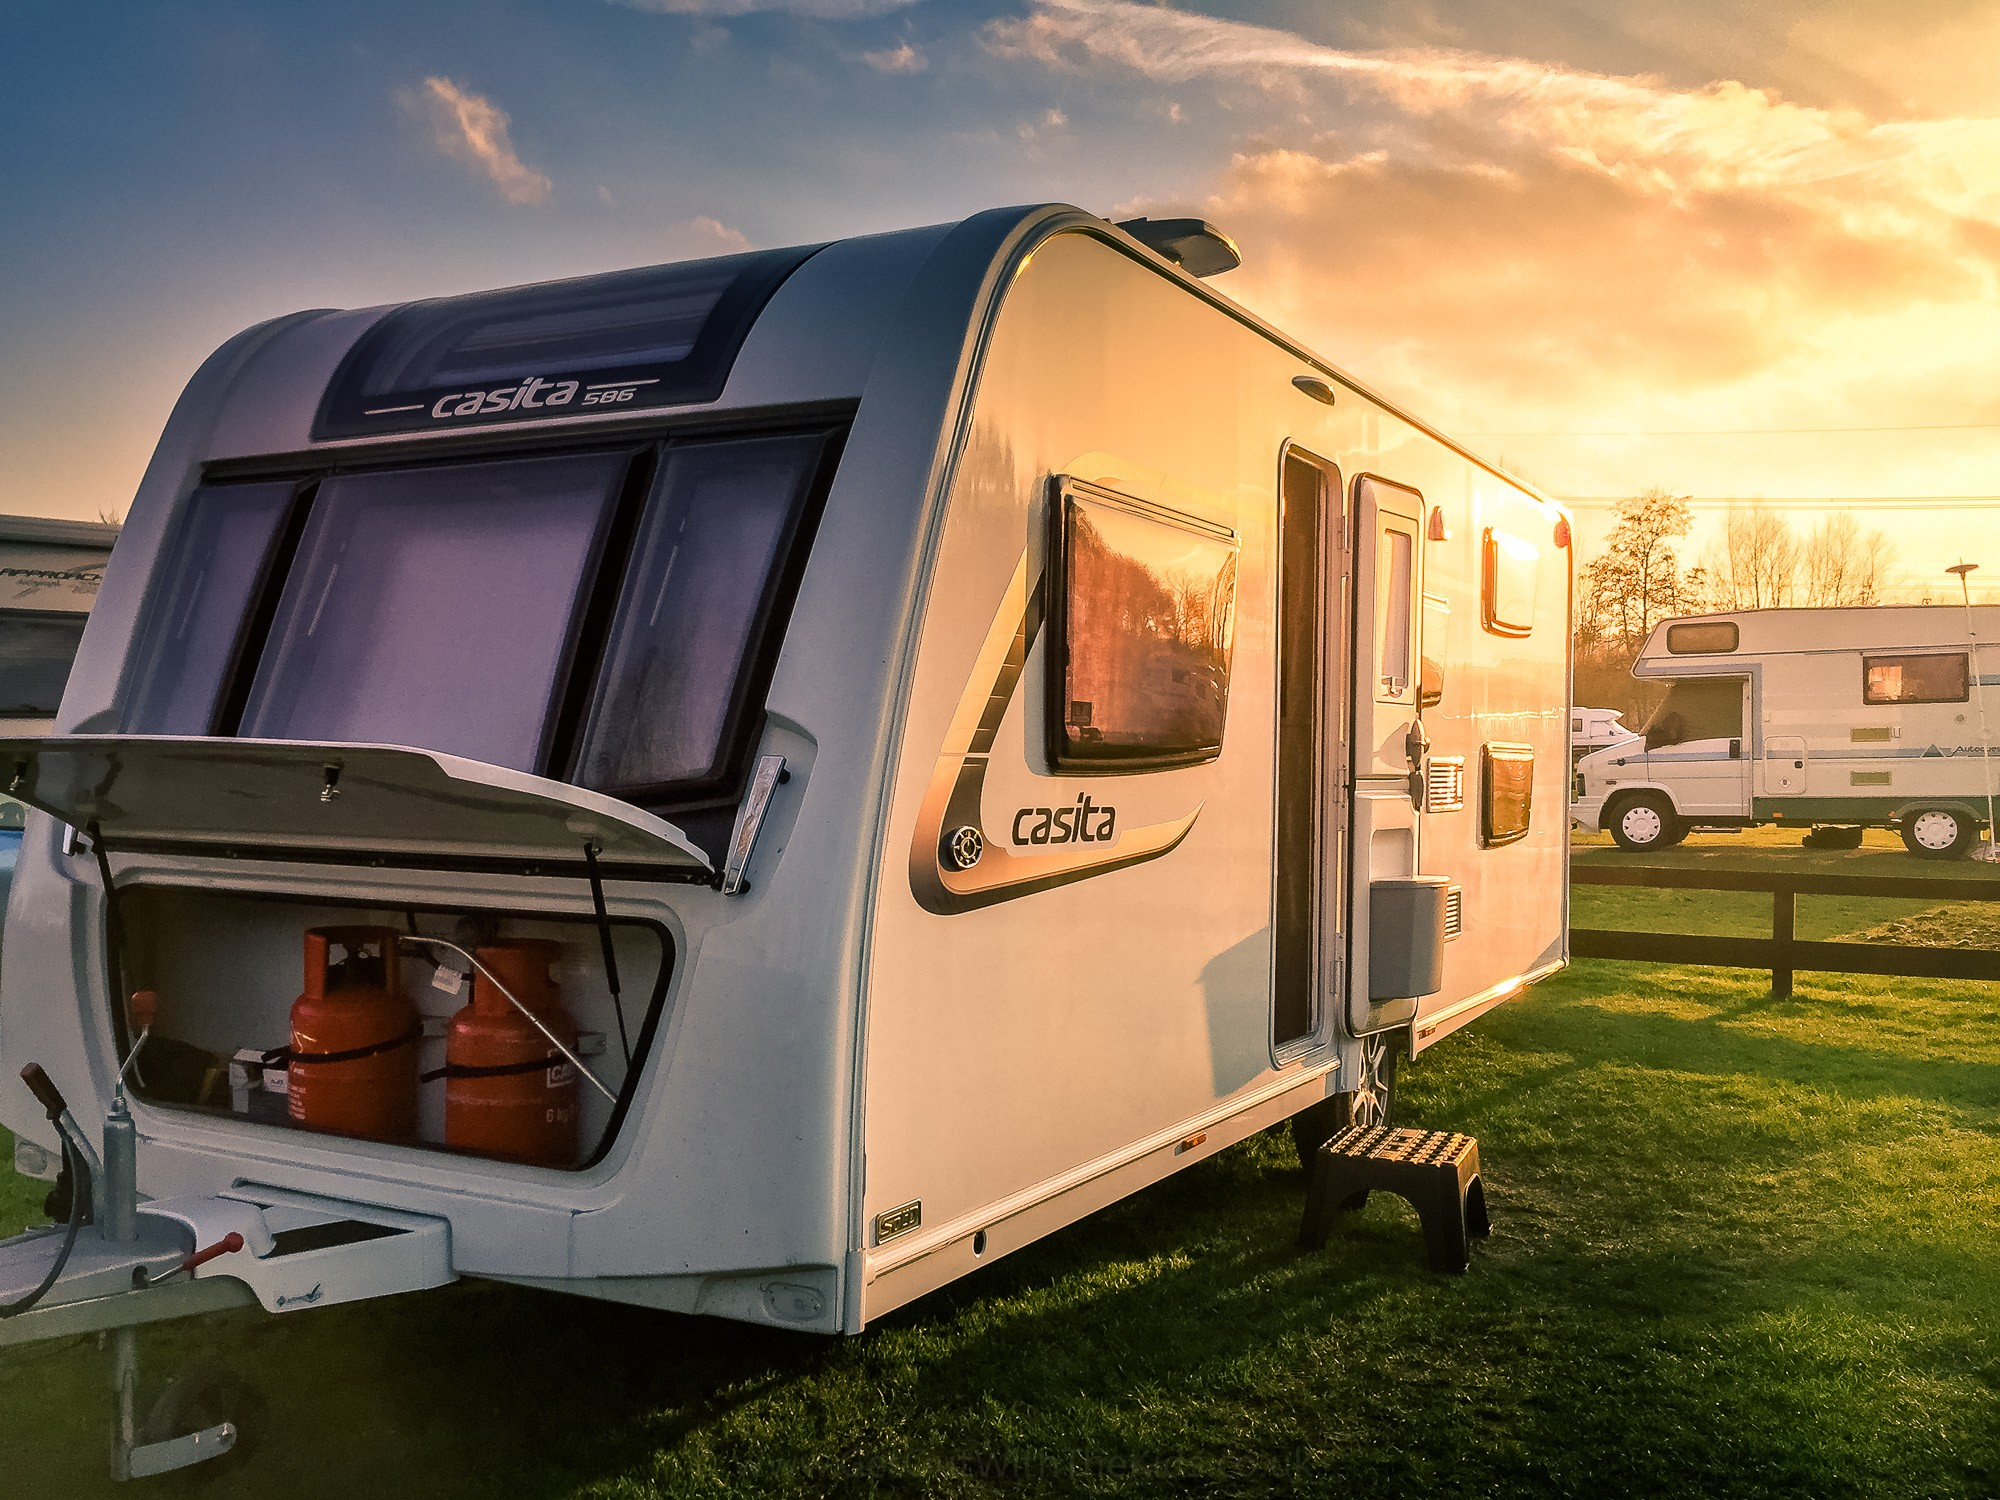 Casper the Caravan at Sunset